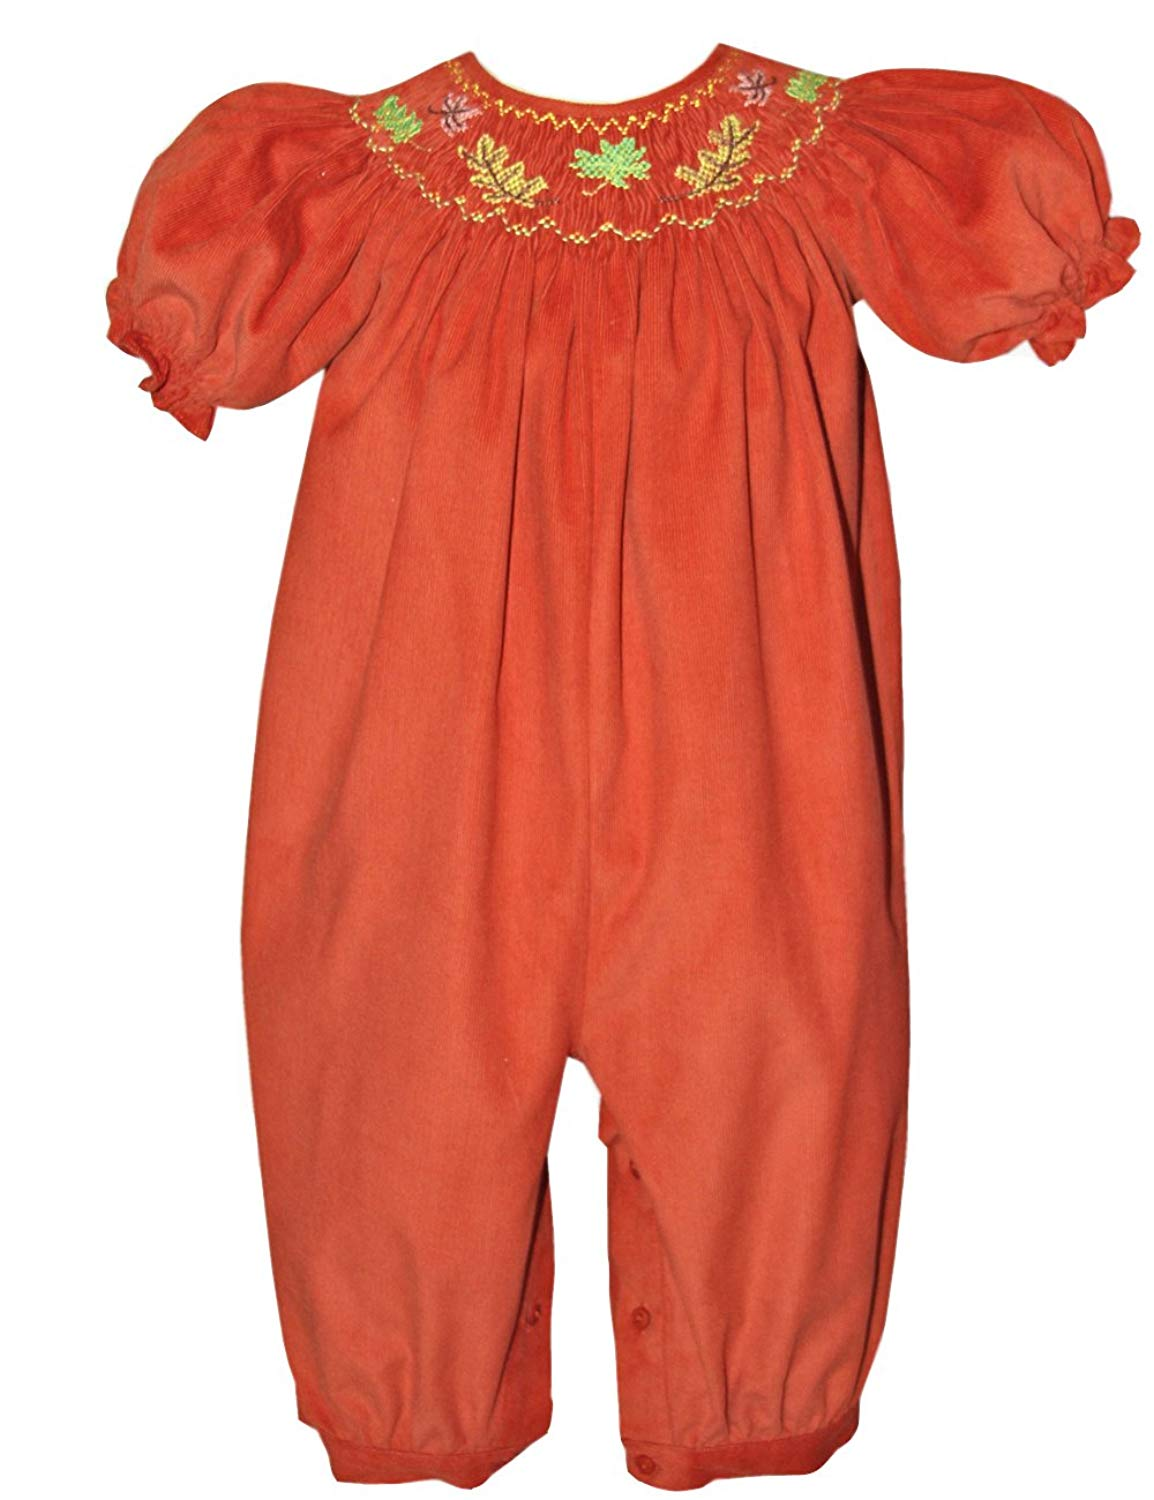 56af7d73b Get Quotations · Carouselwear Smocked Fall Leaves Baby Girls Long Bubble  Thanksgiving Harvest